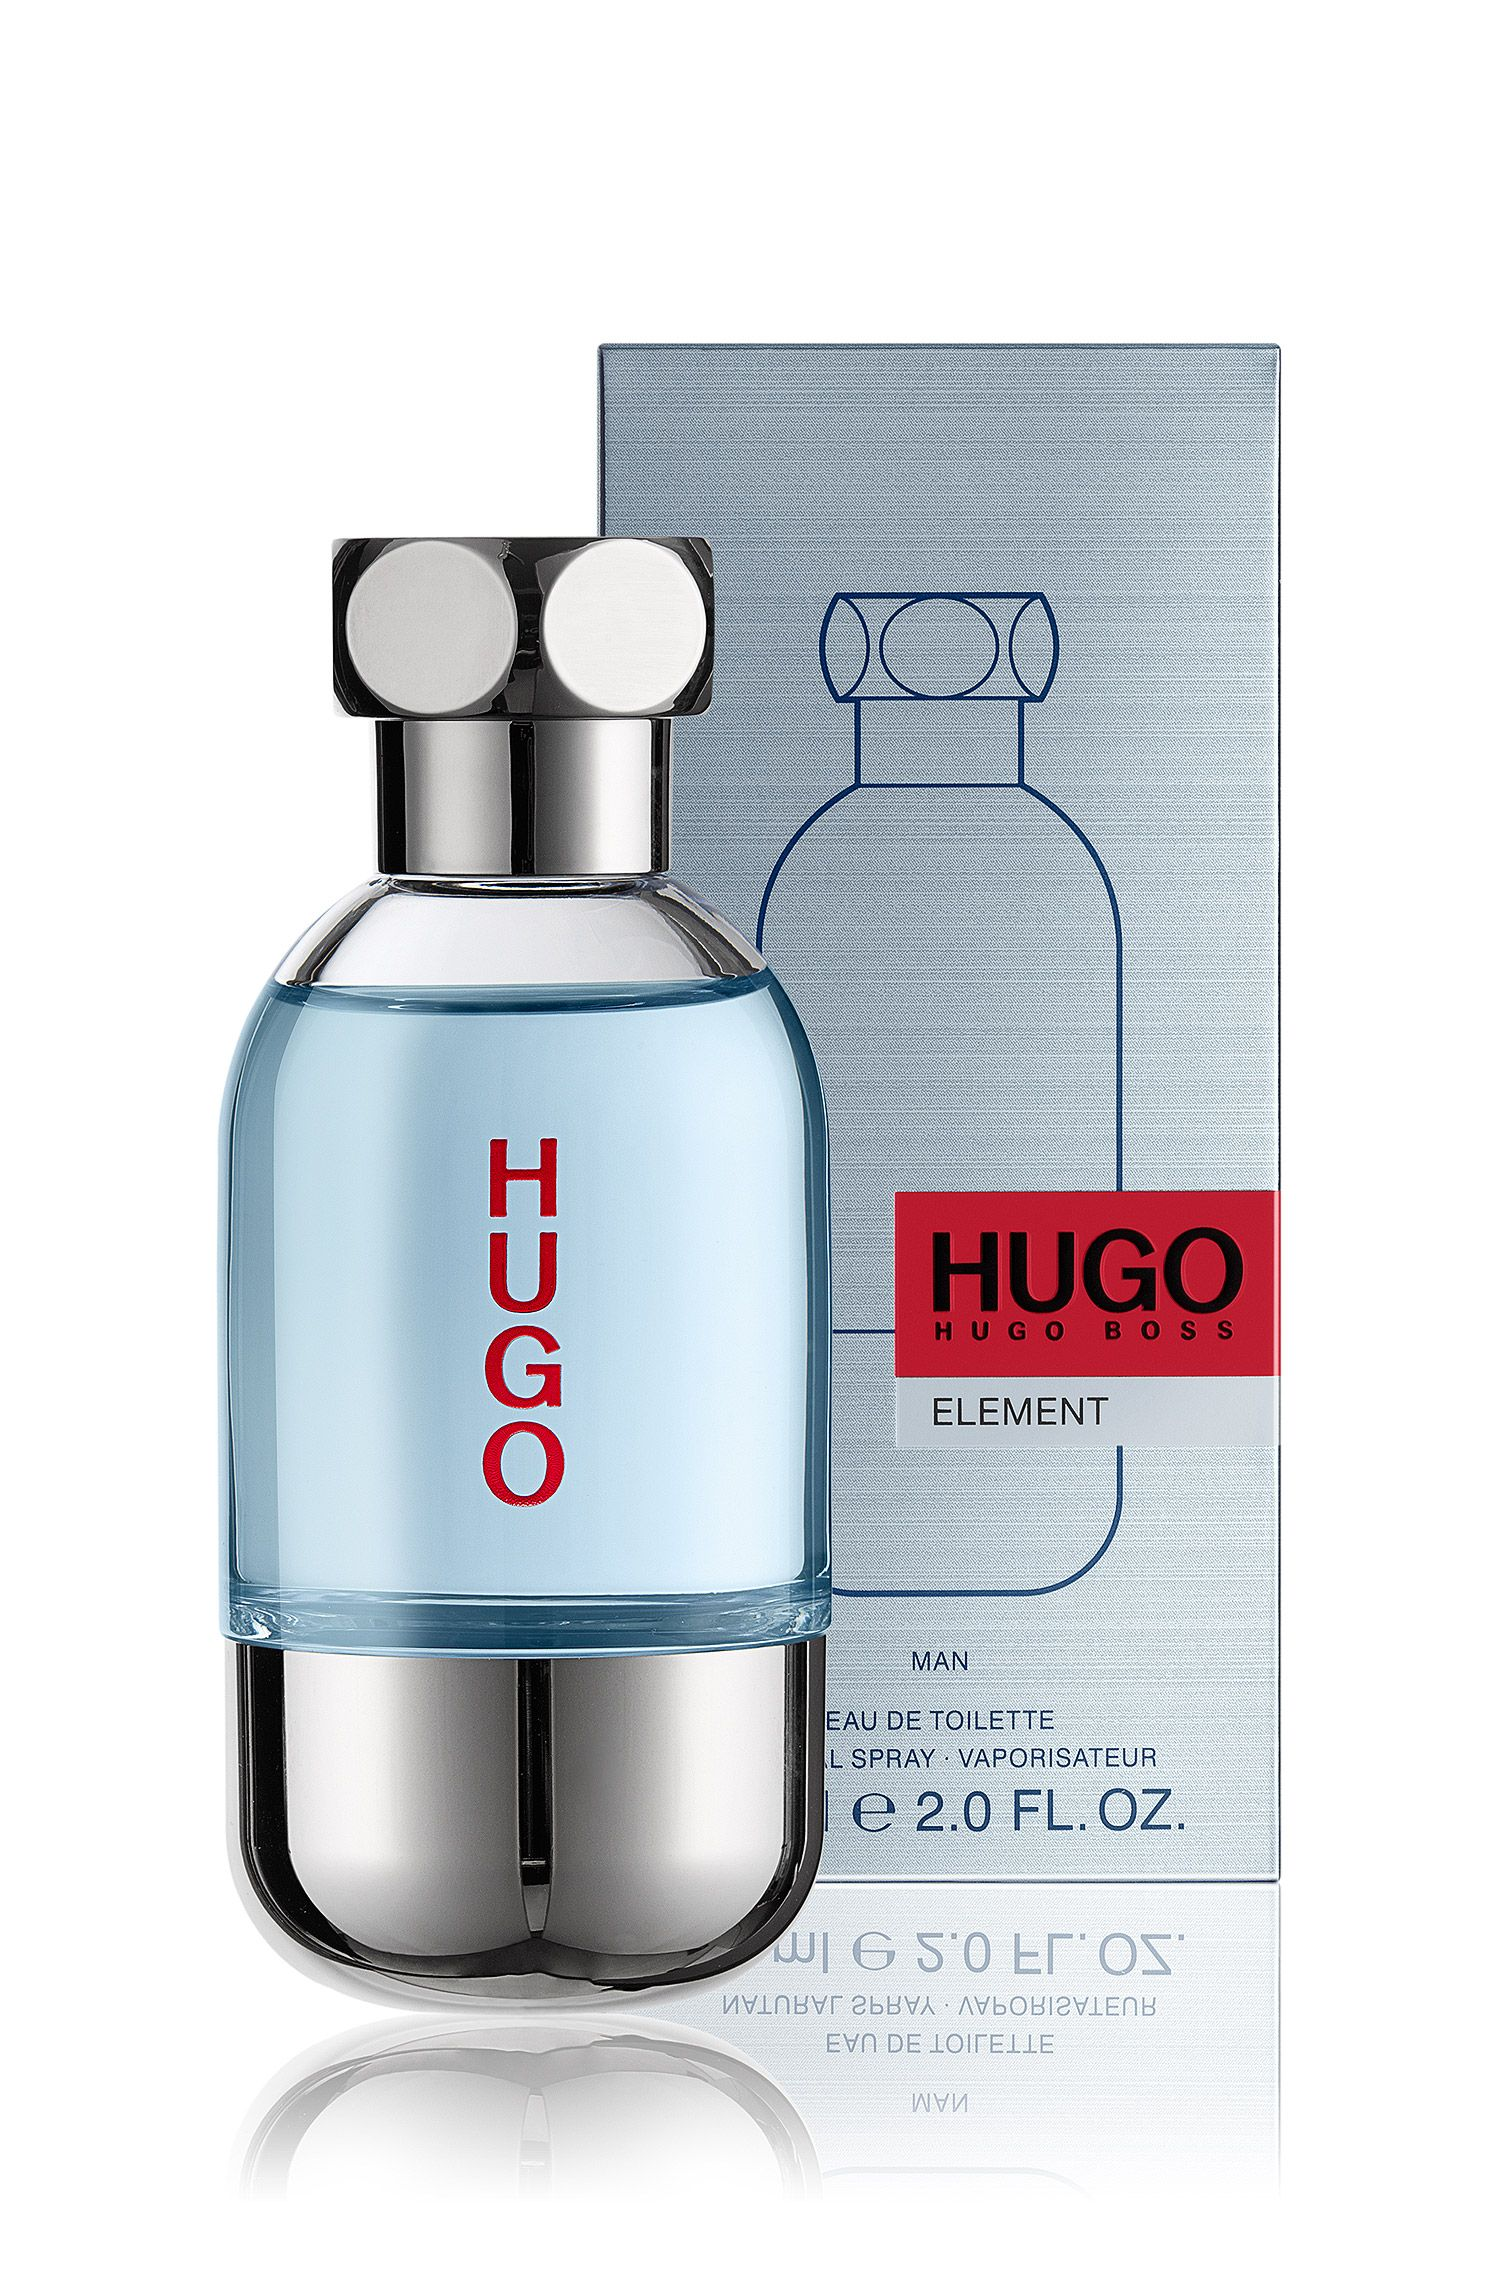 Eau de toilette HUGO Element 60 ml